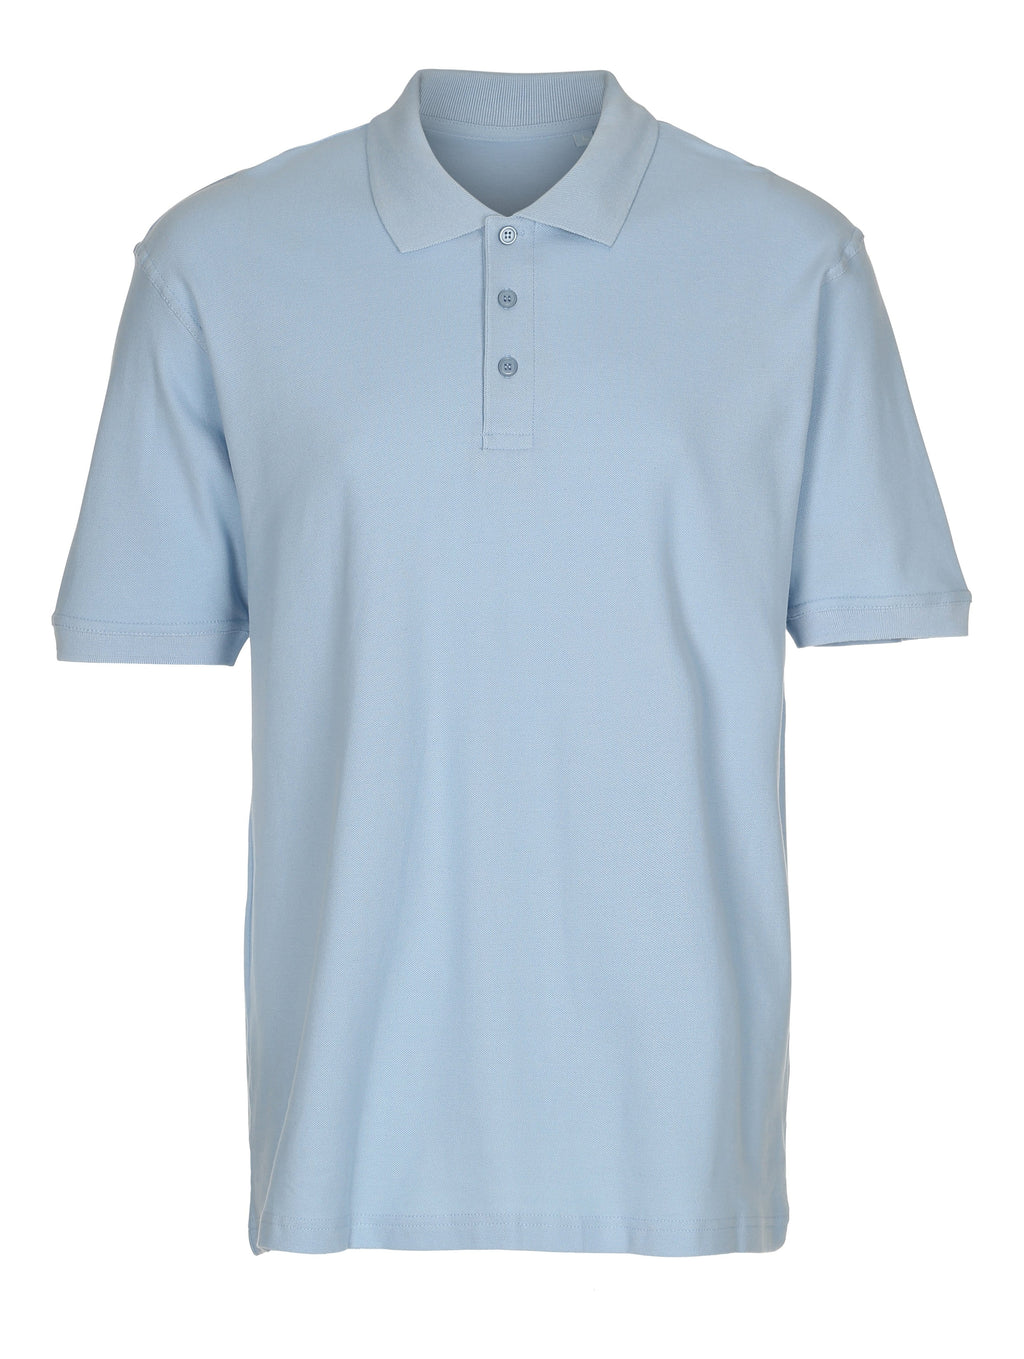 Basiz Pique Polo Shirt - Light blue